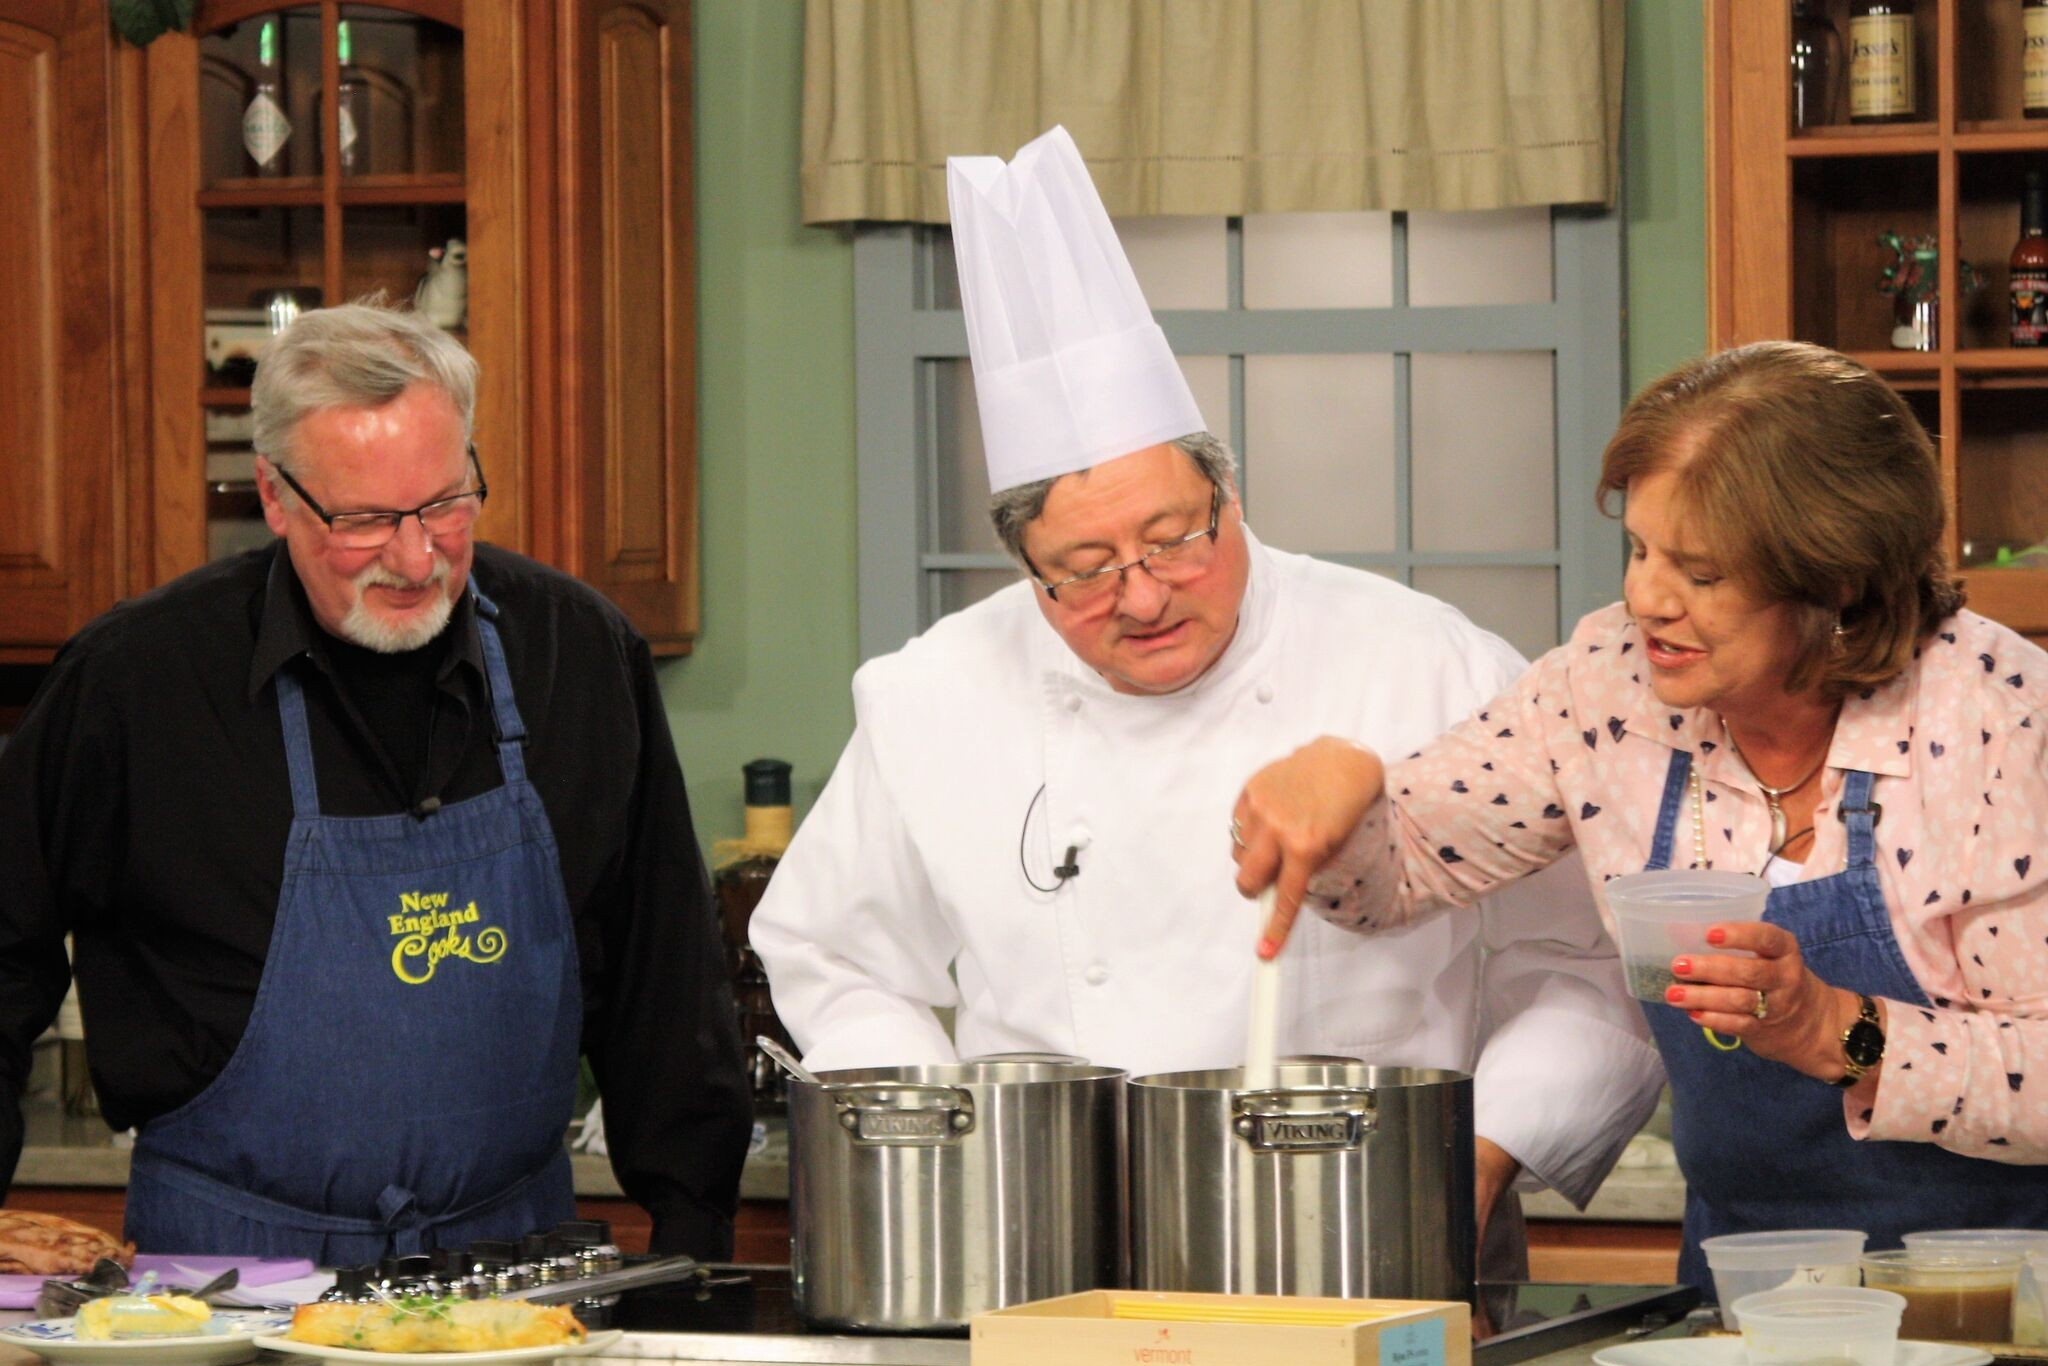 Chef Jean-Louis Guerin, New England Culinary Institute